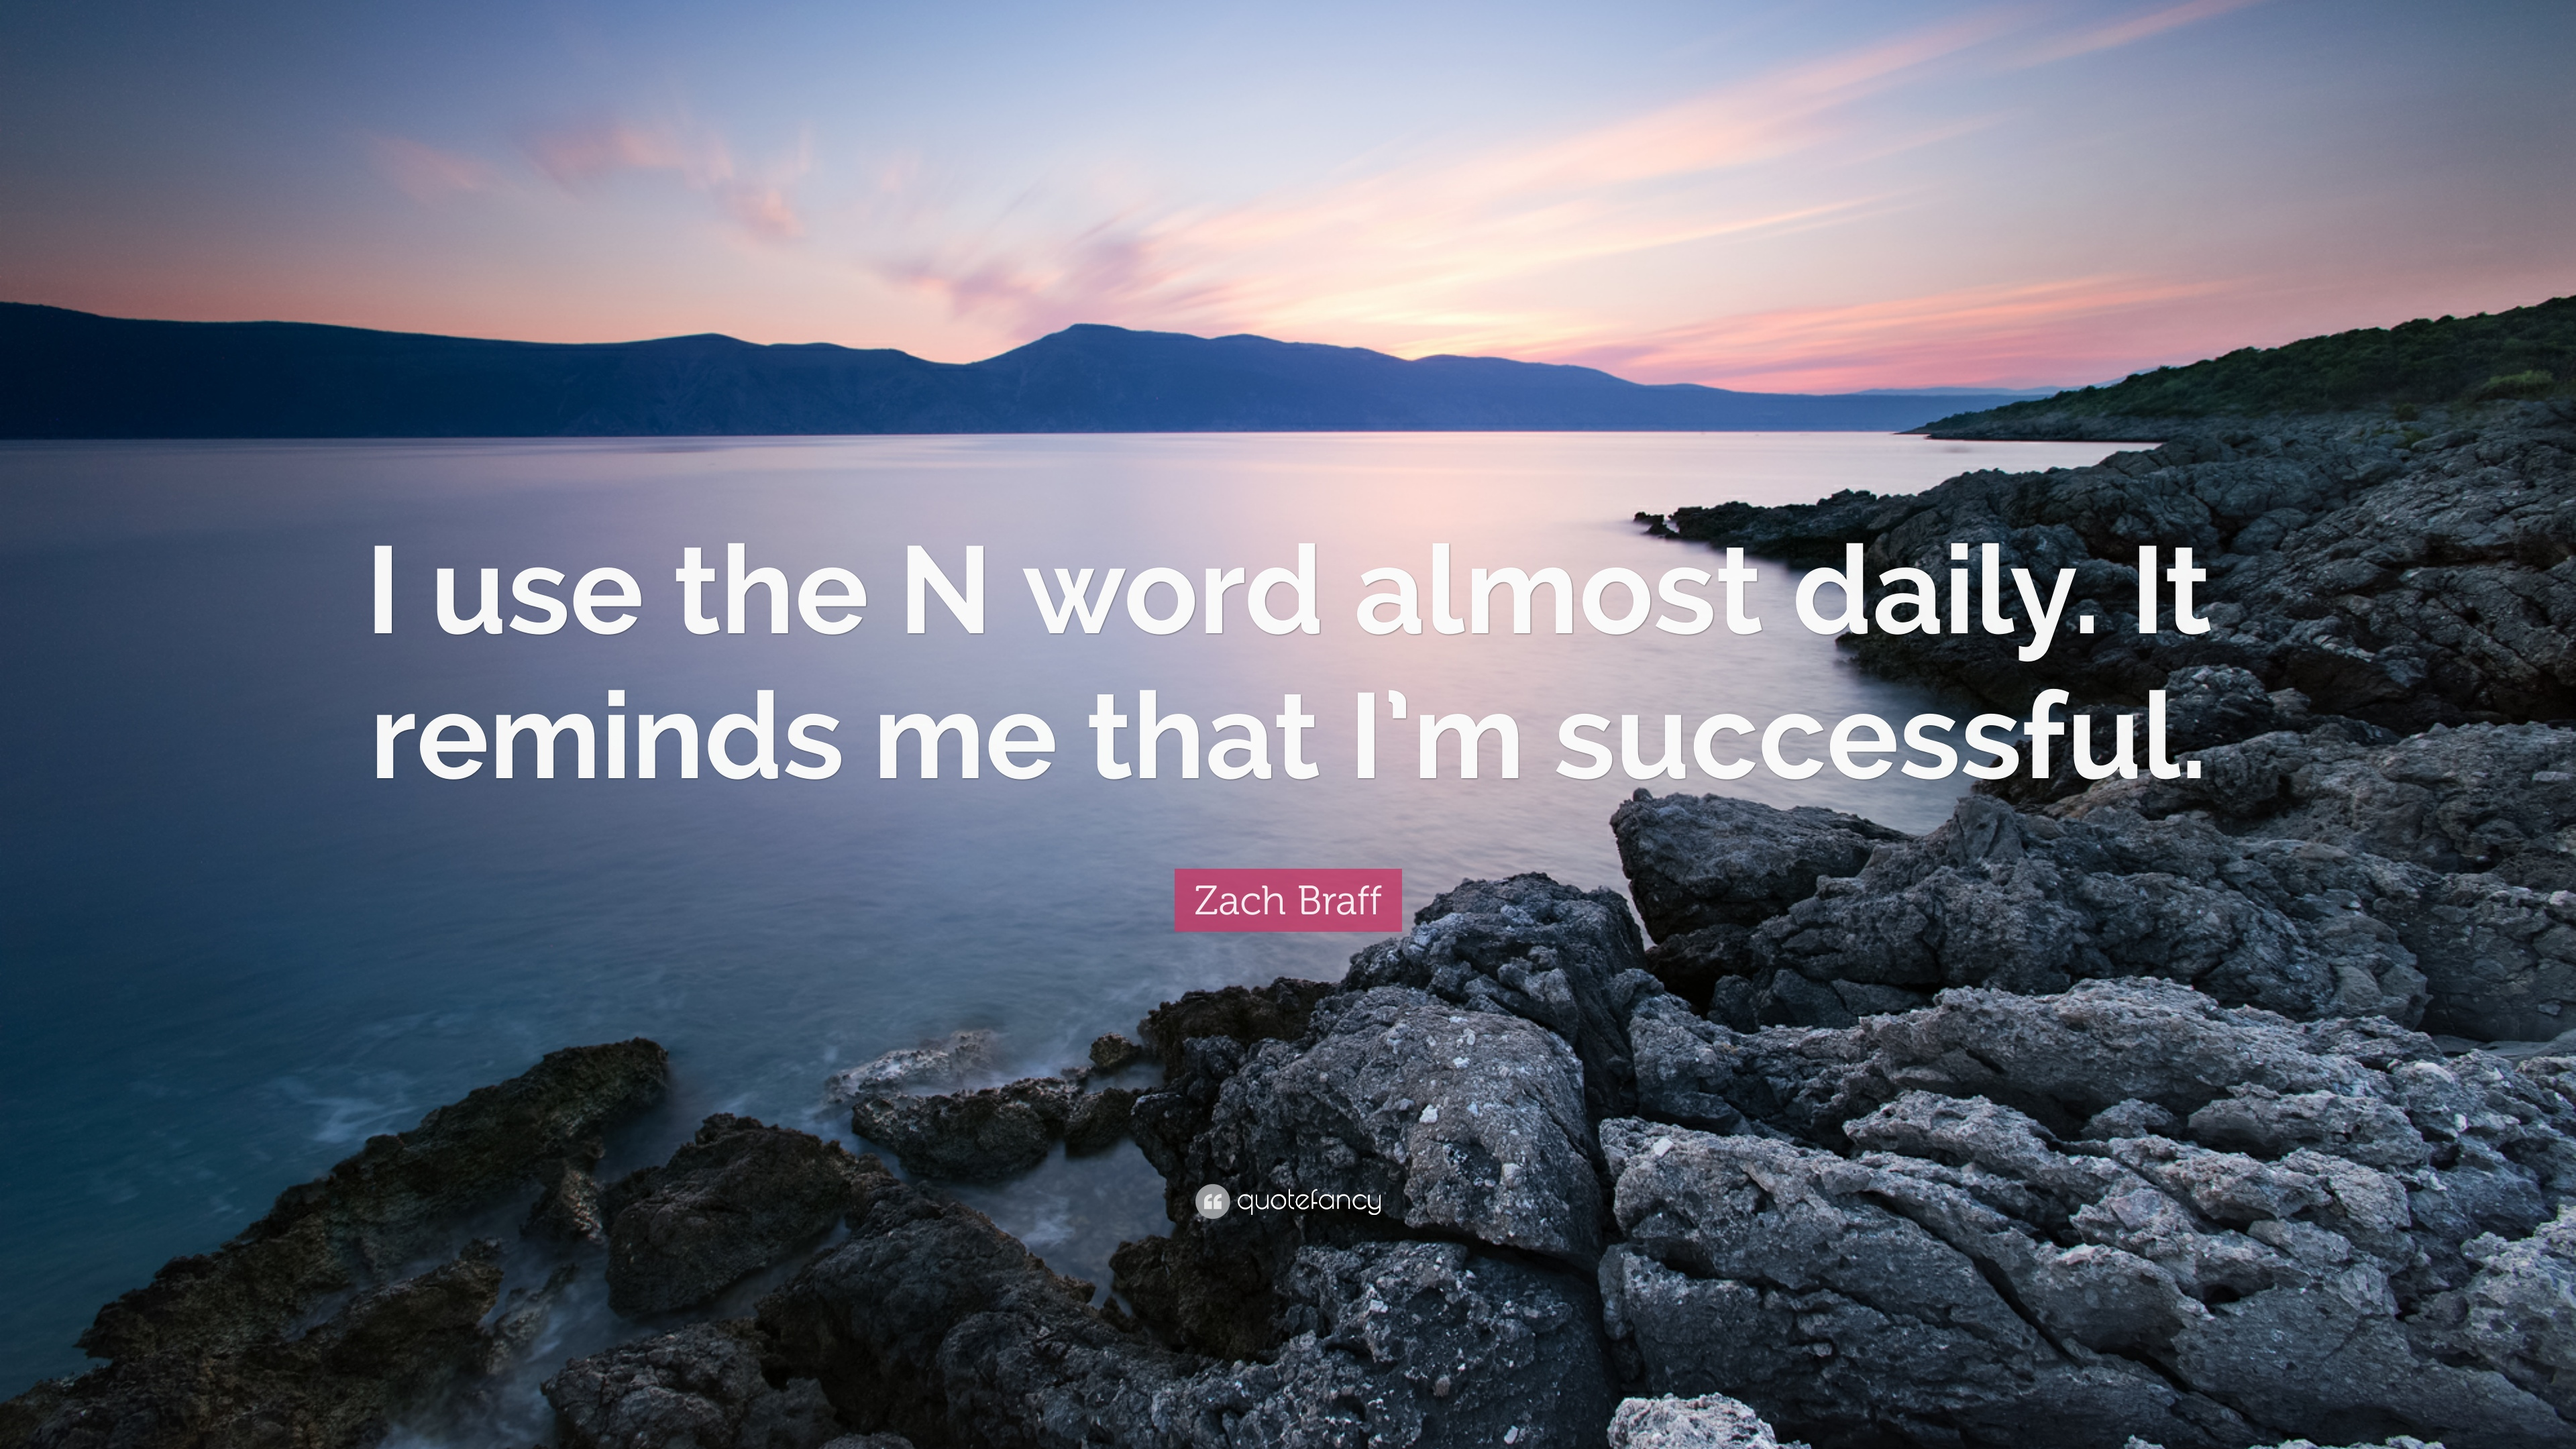 zach braff quote i use the n word almost daily it reminds me that